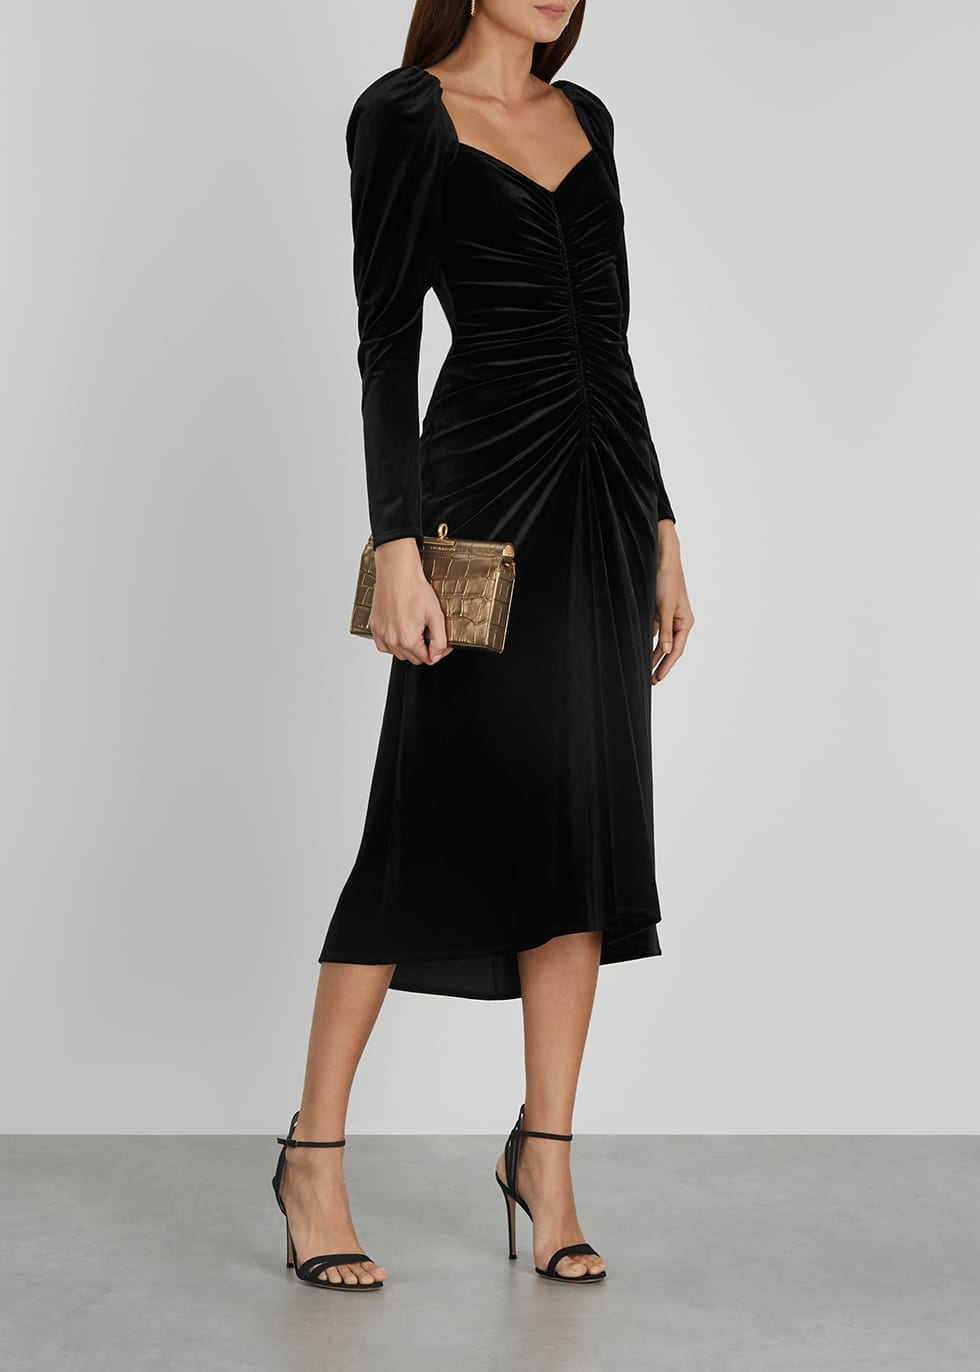 A.L.C. Chamberlain Black Stretch-velvet Midi Dress